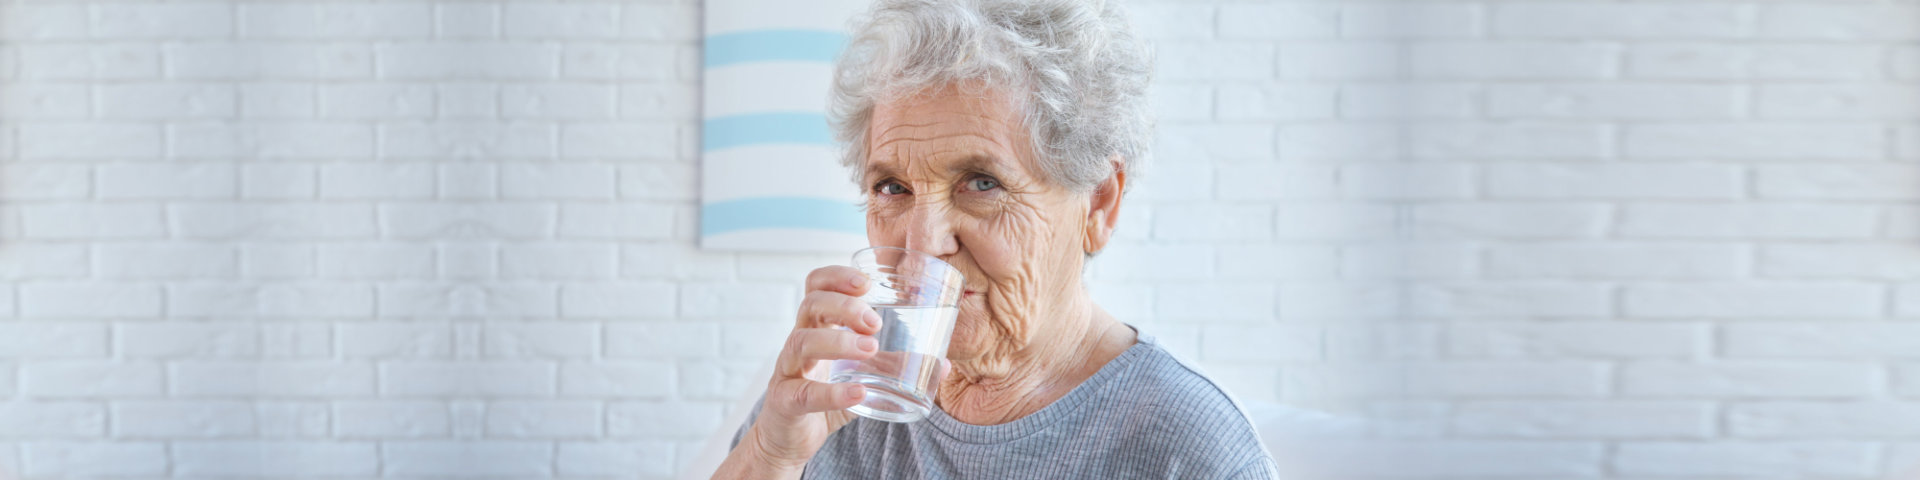 Senior woman drinking a glass of water